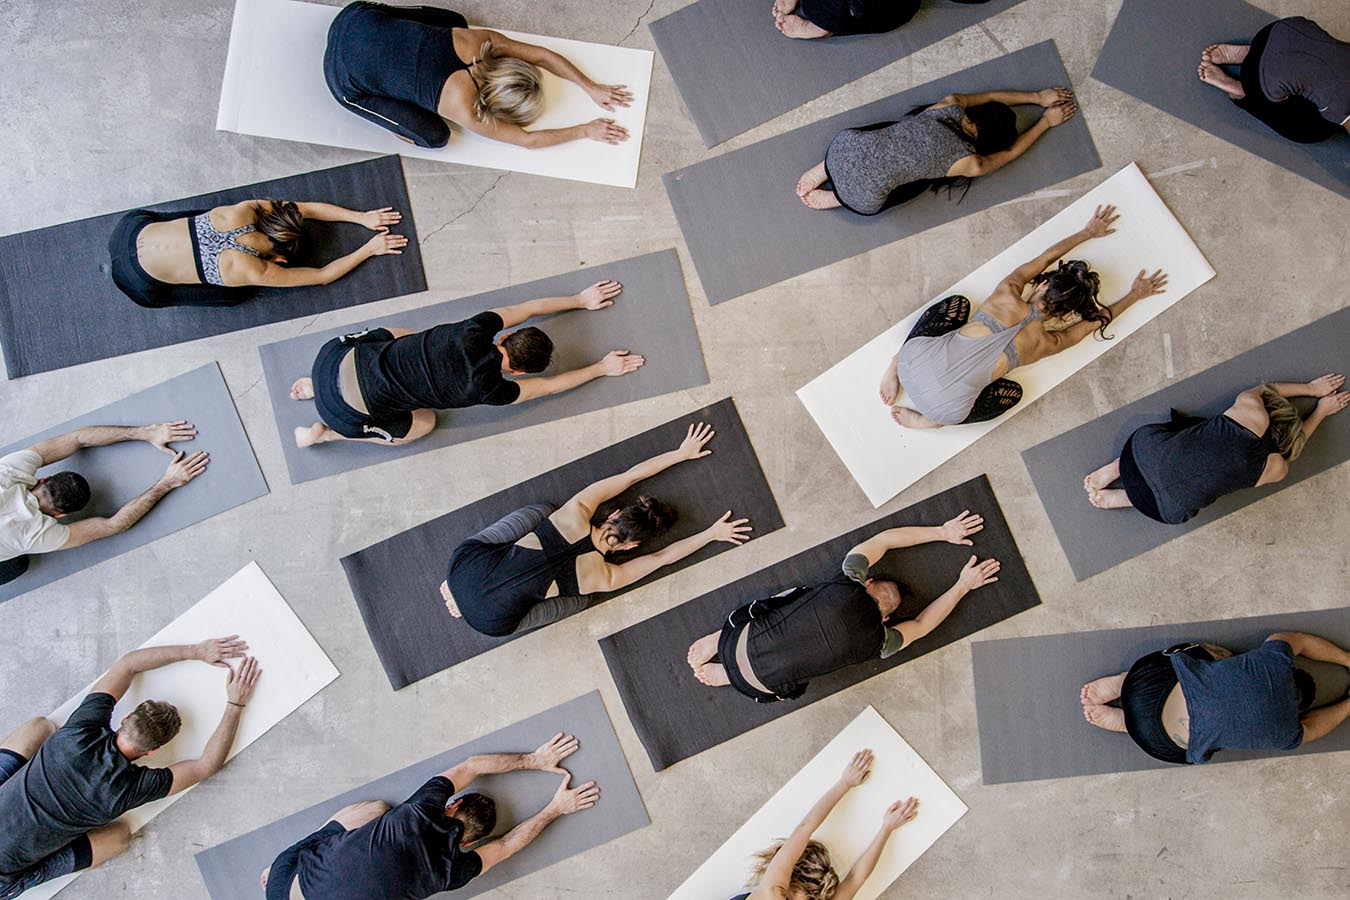 An aerial shot of a multi ethnic group of men and women practice yoga on on mats while wearing grey, black and white in an industrial setting. They are reaching forward in child's pose.